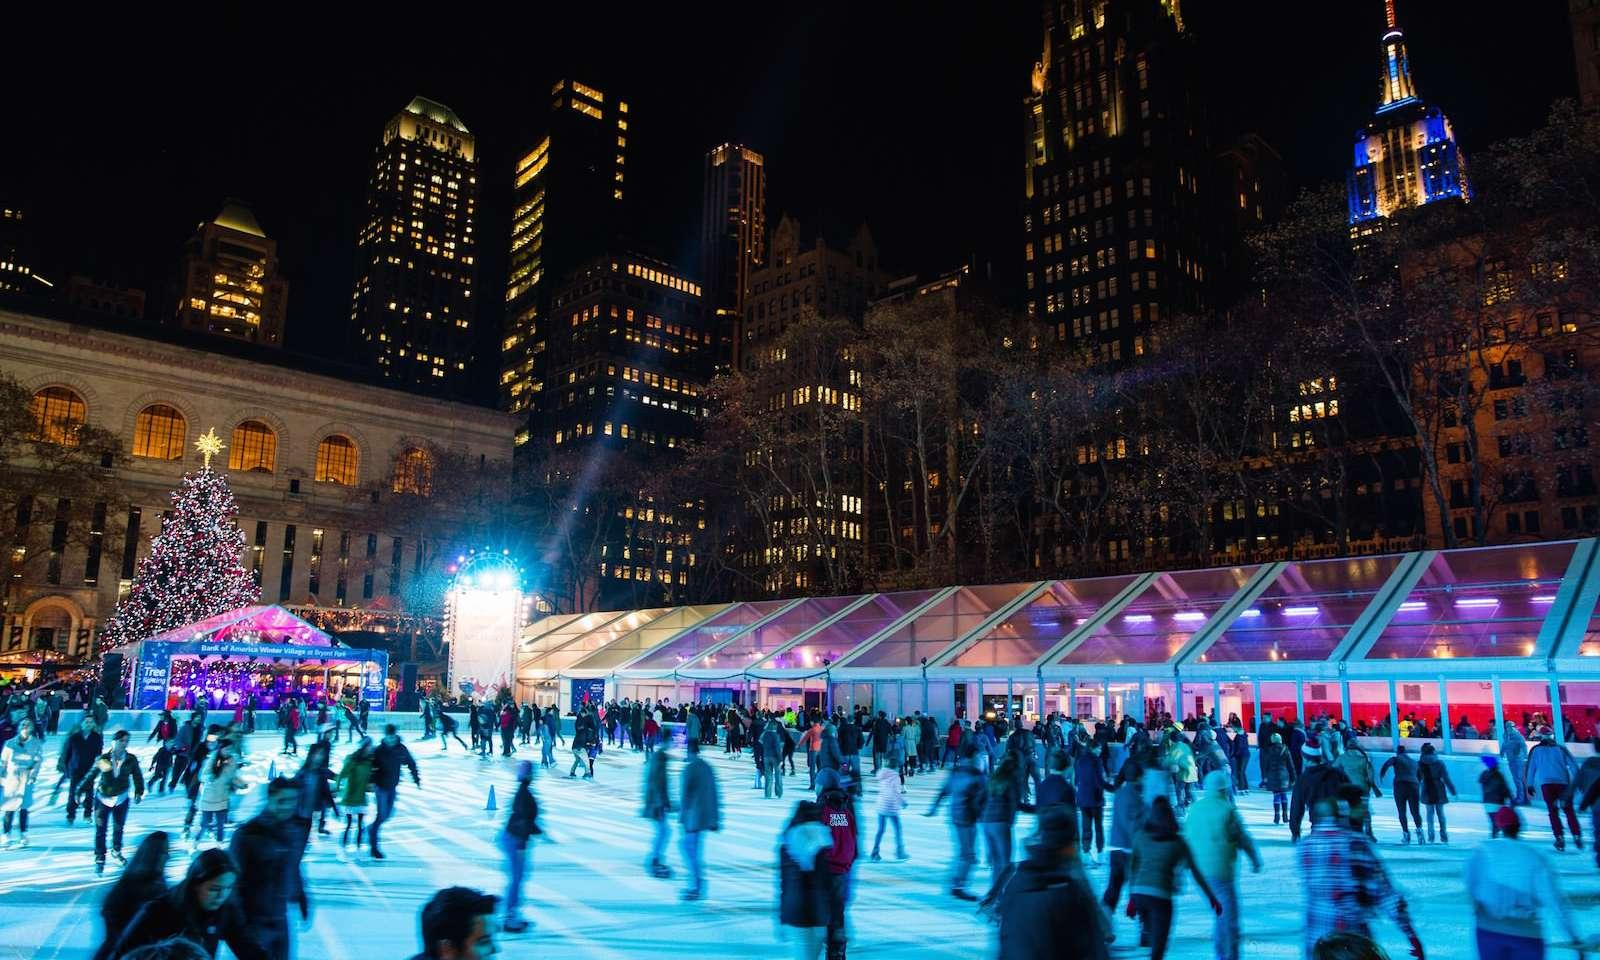 ice rink at winter village at bryant park